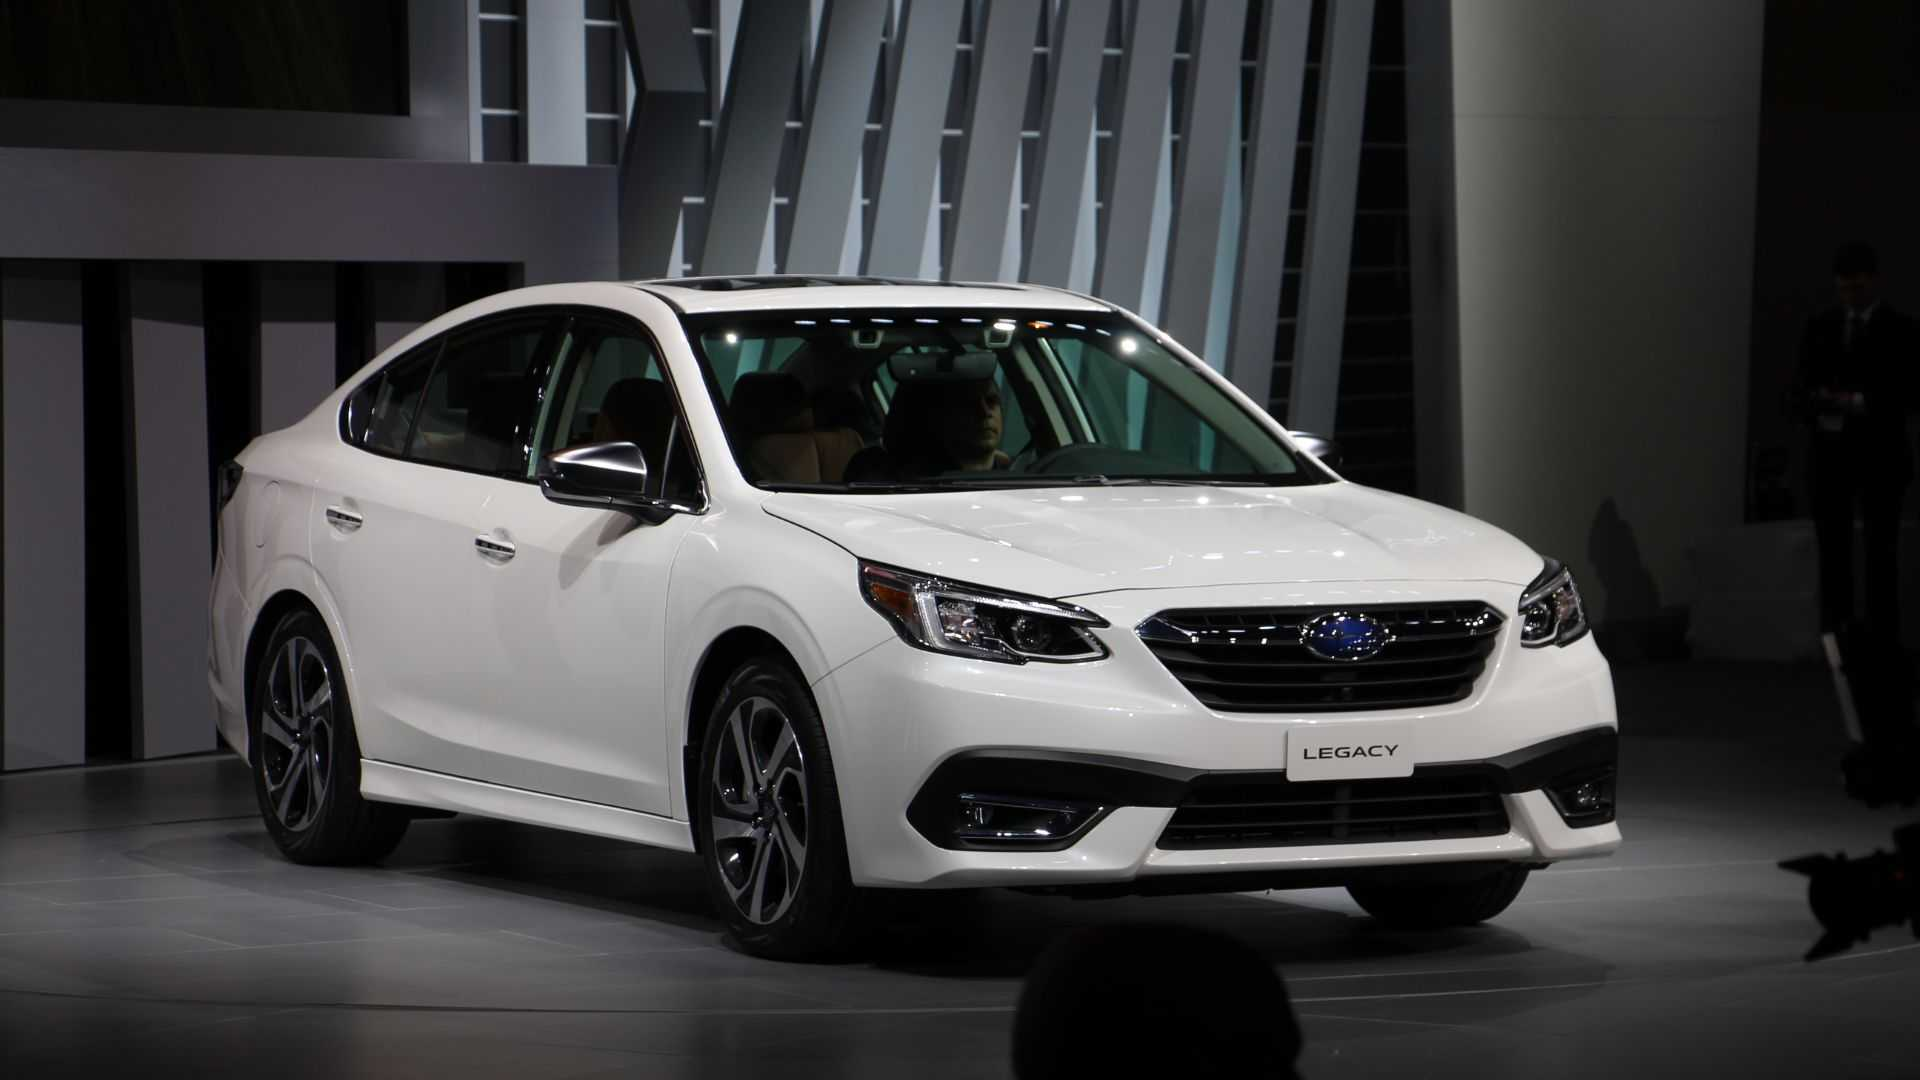 94 A When Will 2020 Subaru Legacy Be Available Rumors